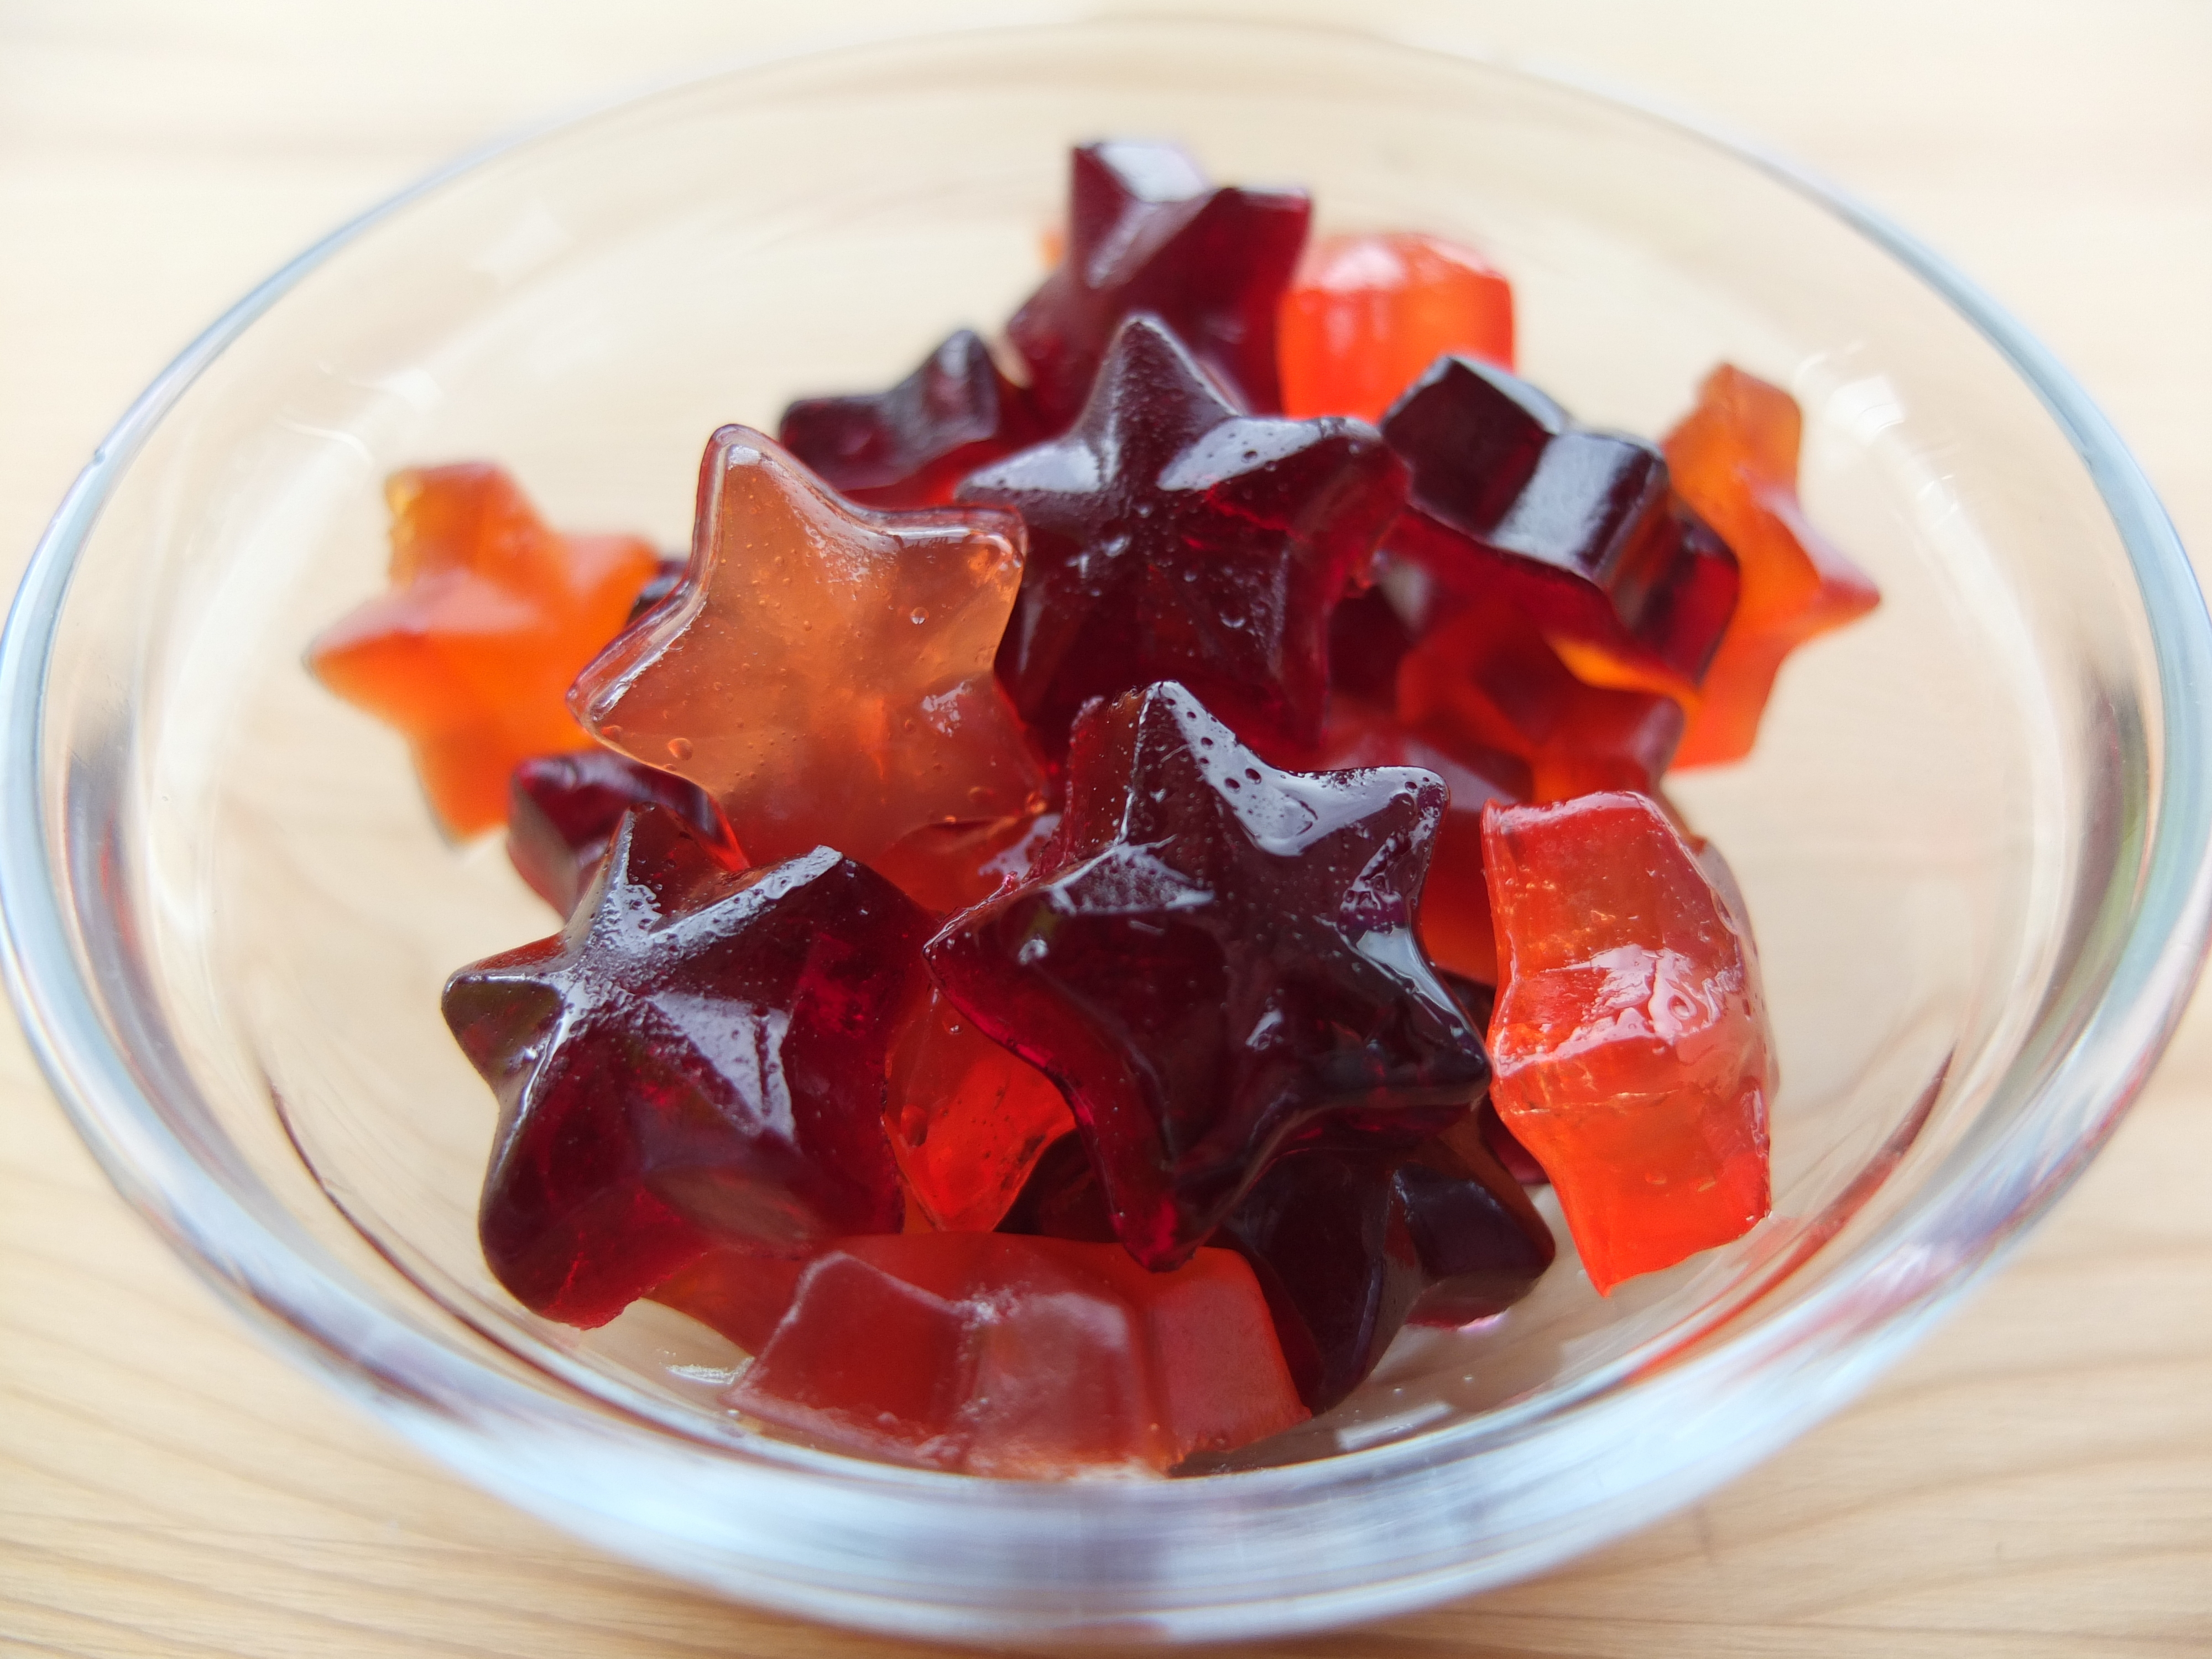 How to make homemade gummy candy for Halloween